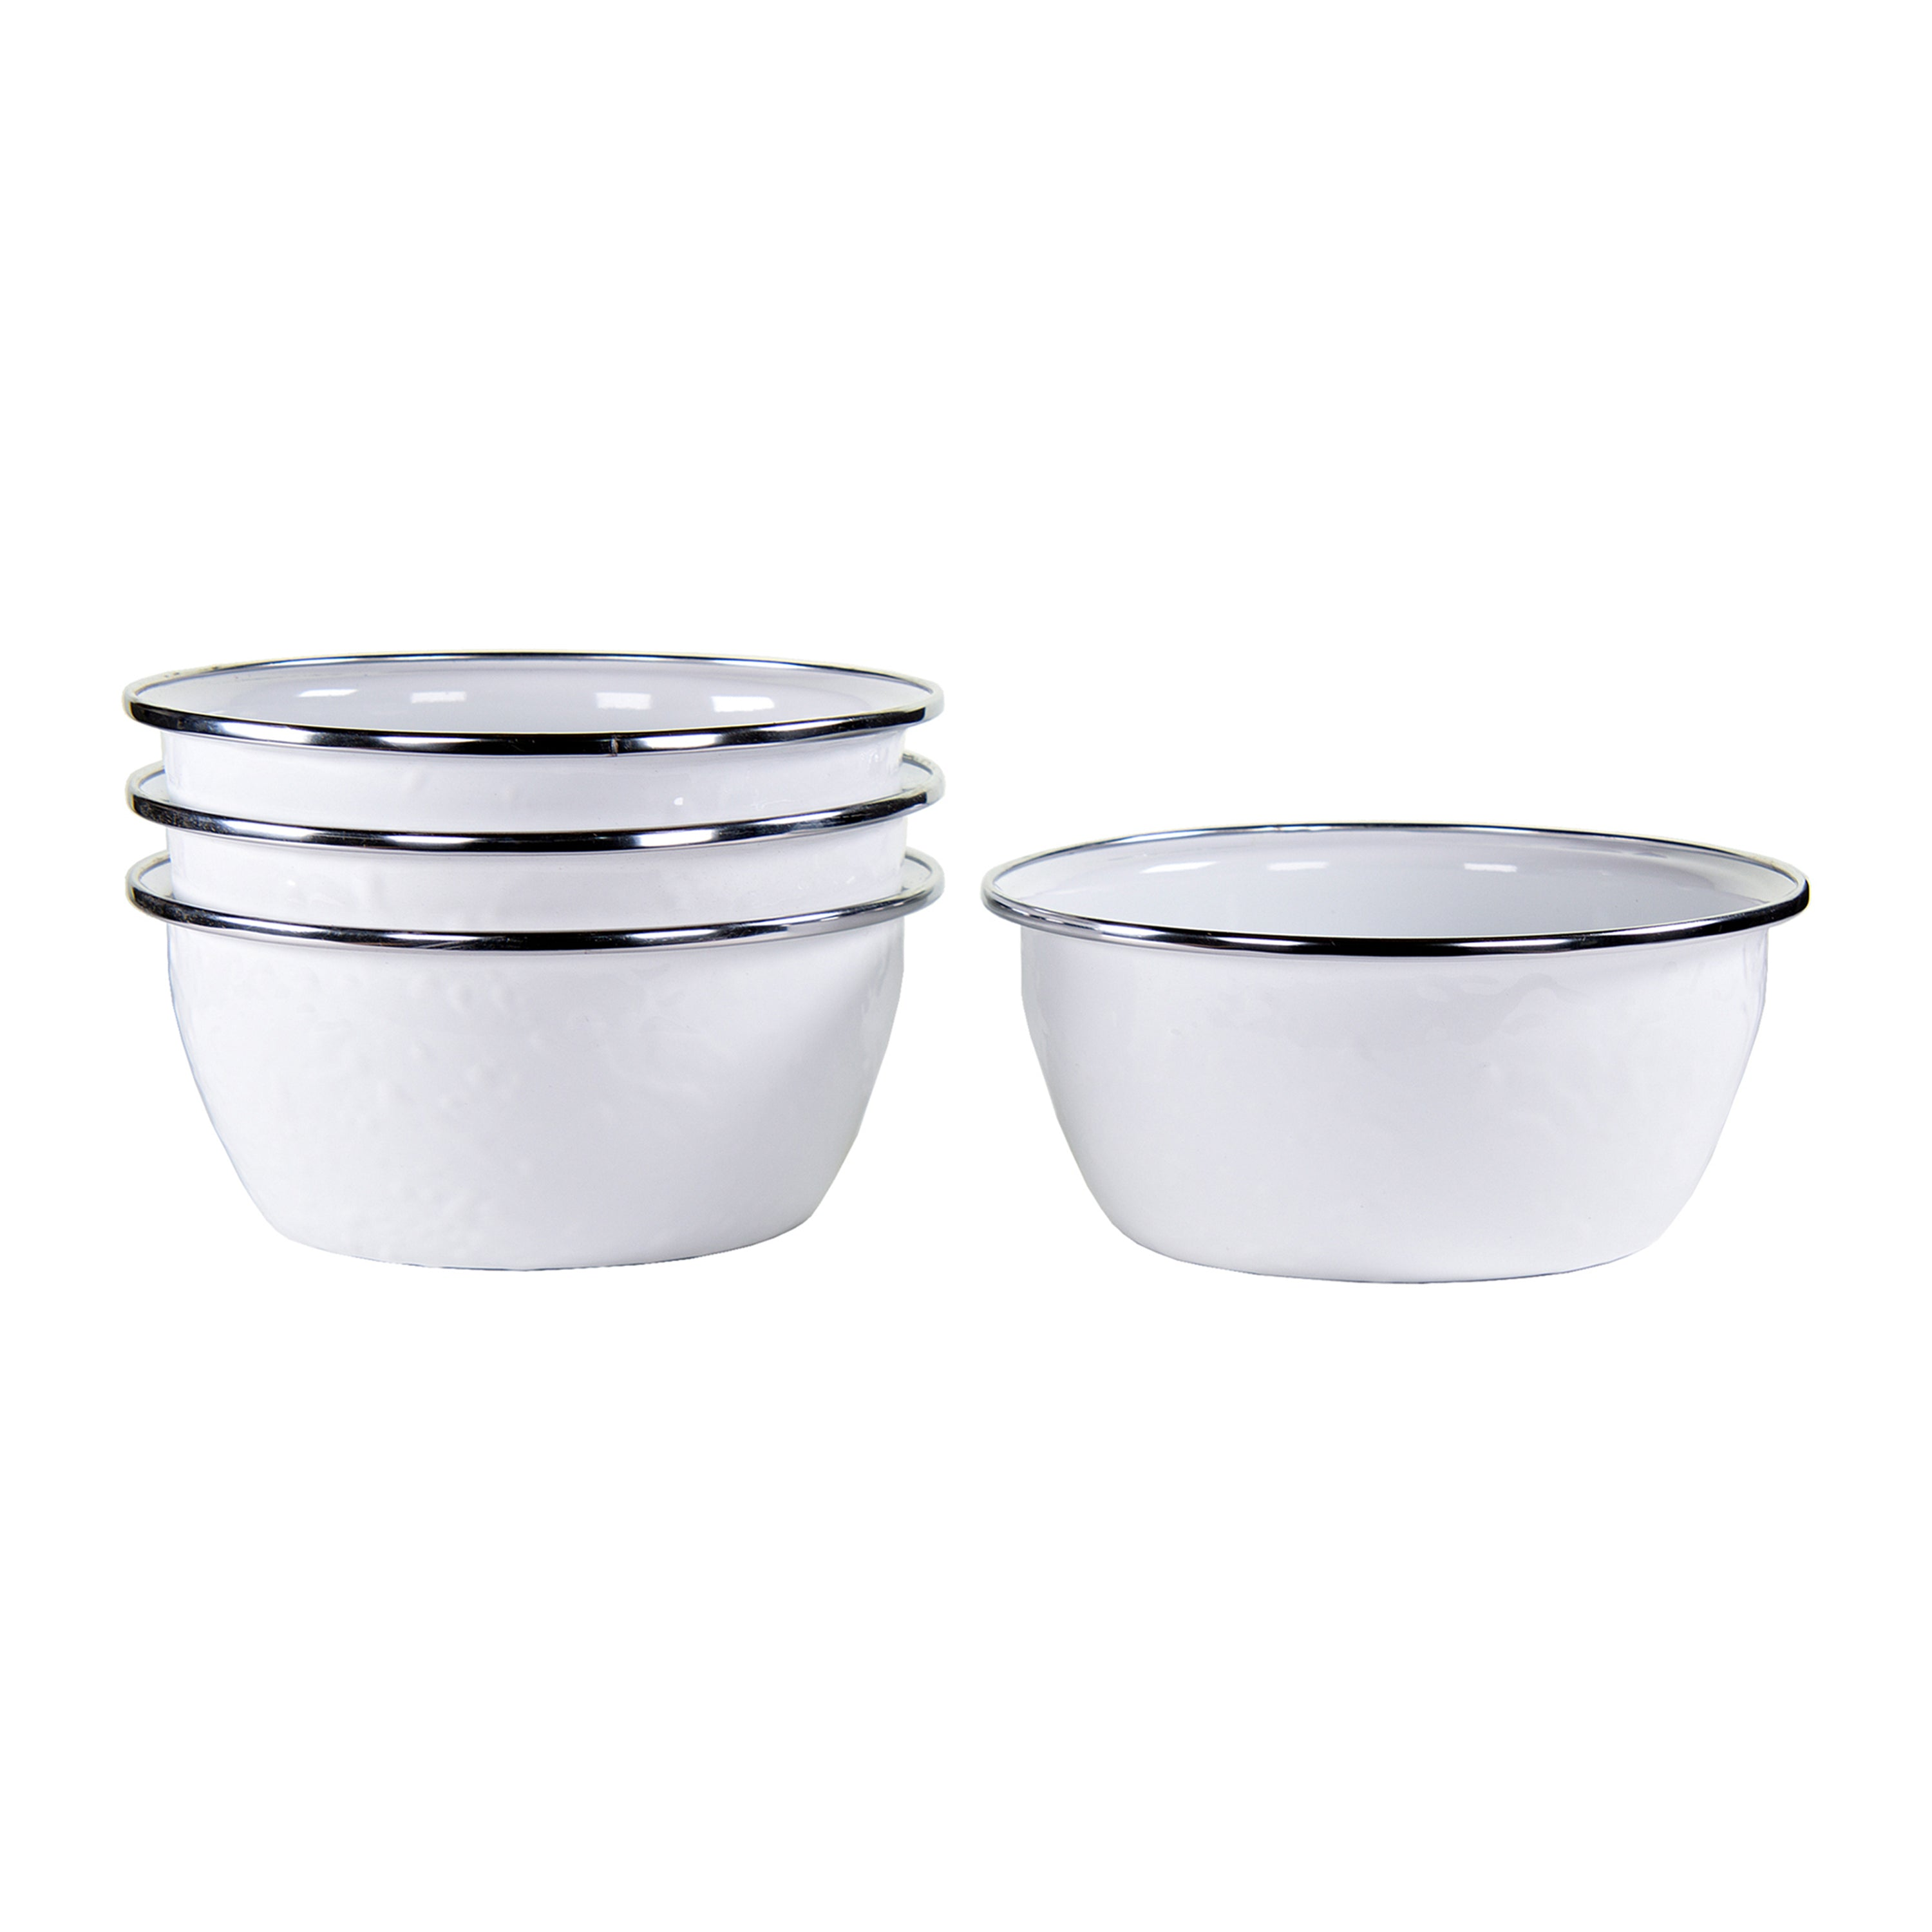 WW61S4 - Set of 4 Solid White Salad Bowls Image 1